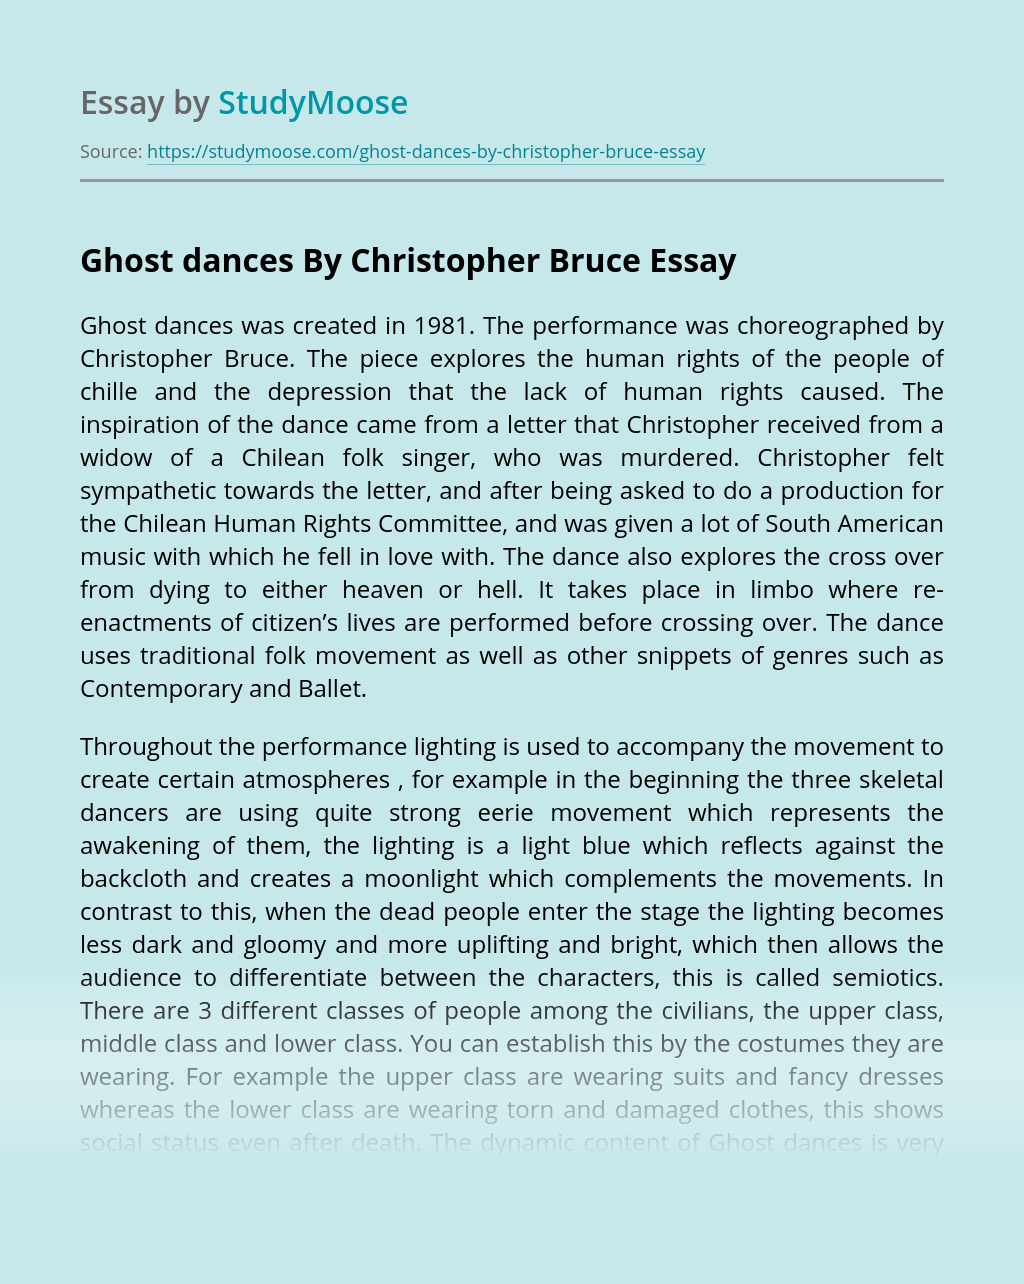 Ghost dances By Christopher Bruce